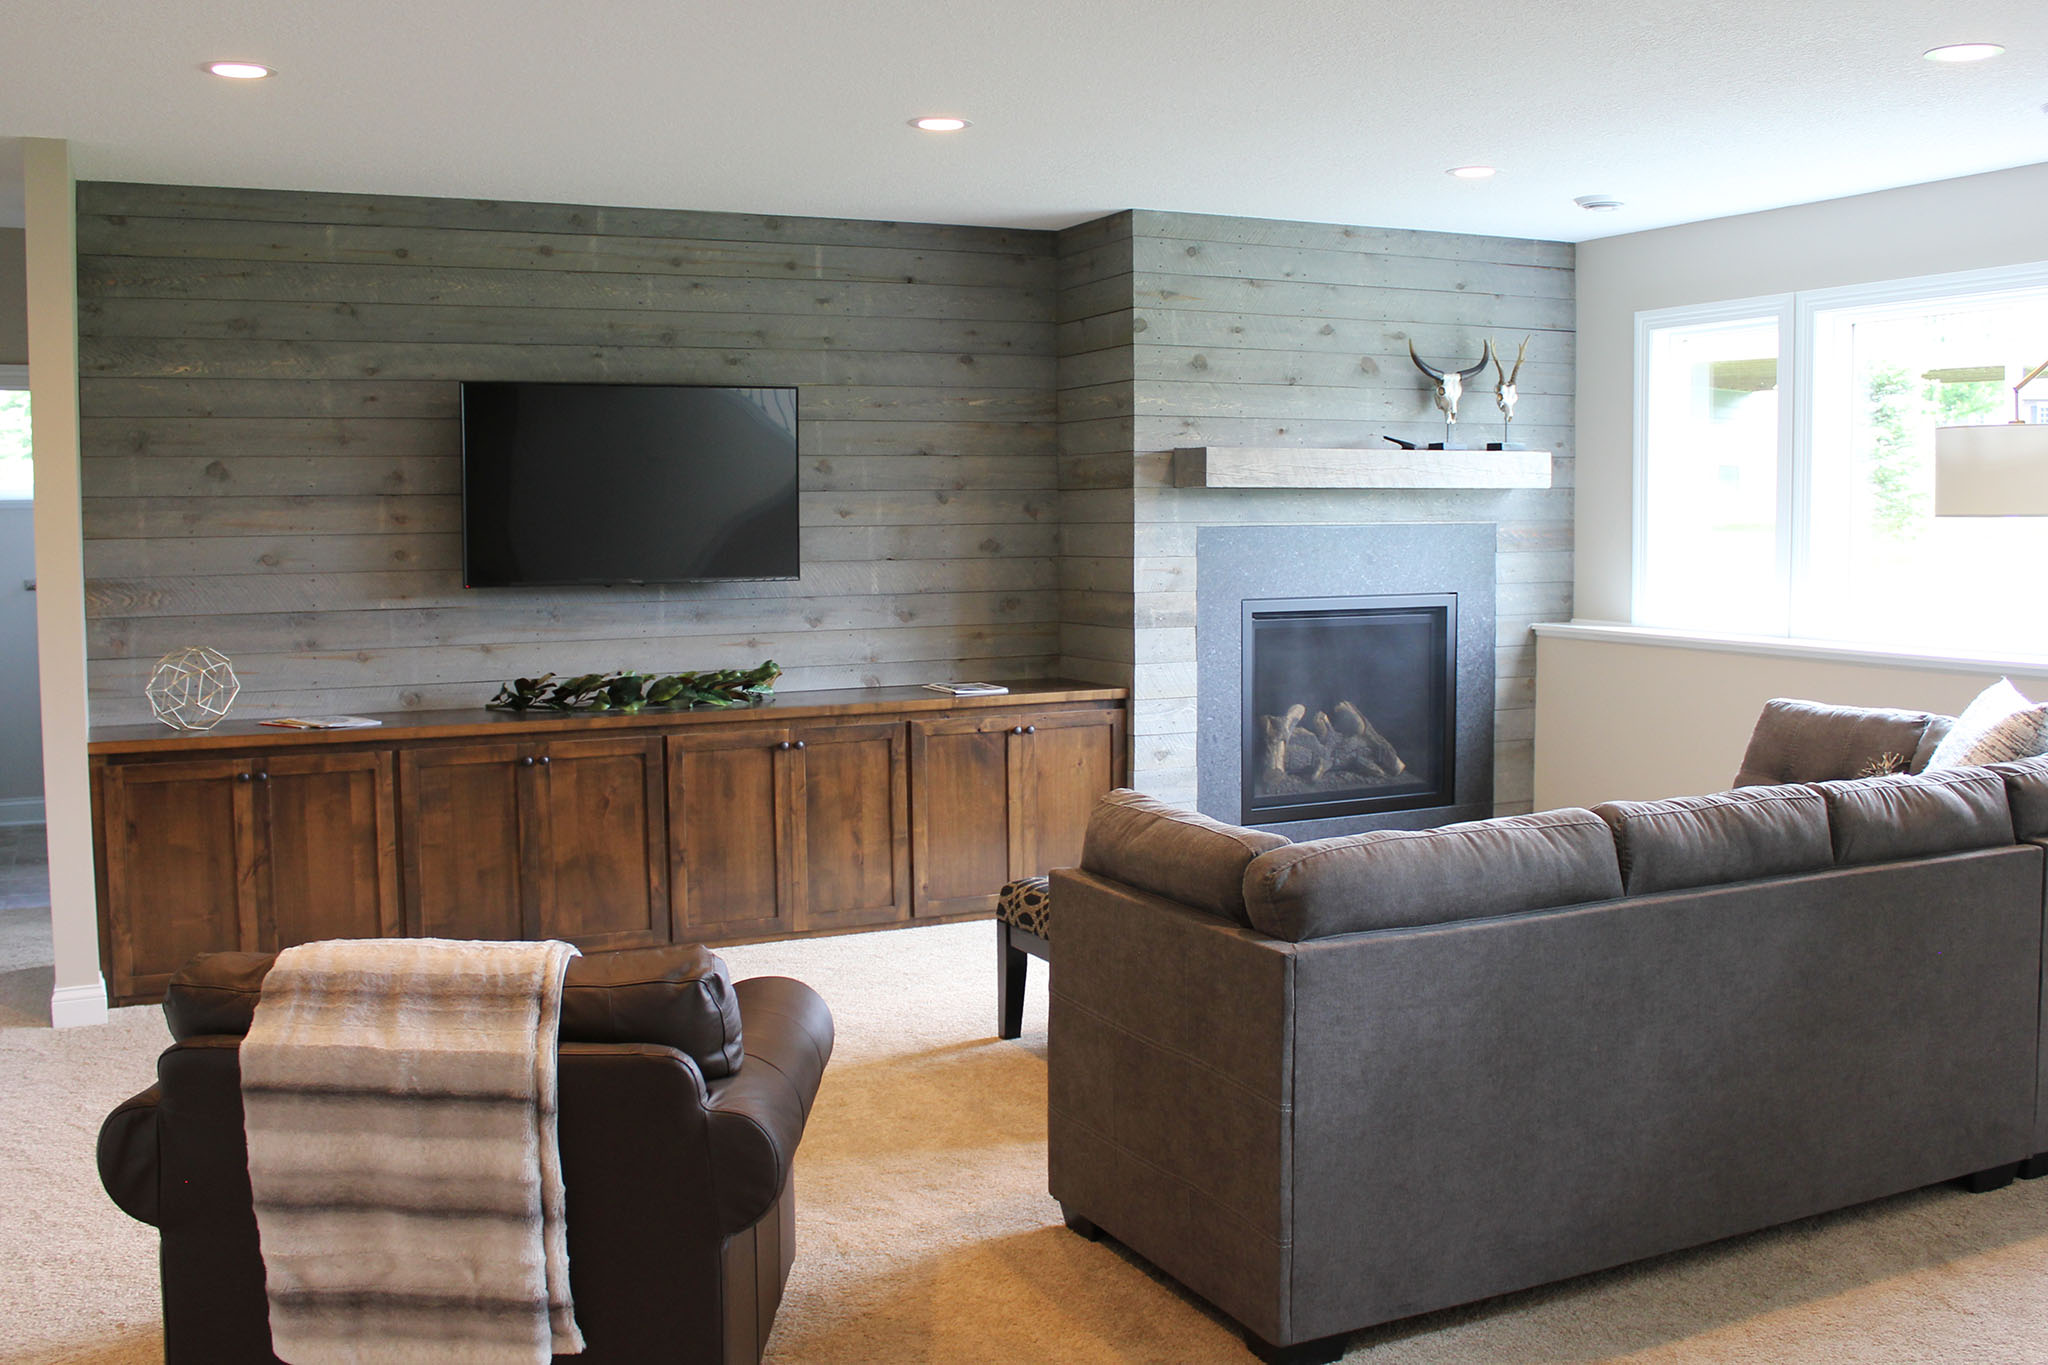 Lower level recreation room with shiplap wall, built-in cabinets and marble surround fireplace